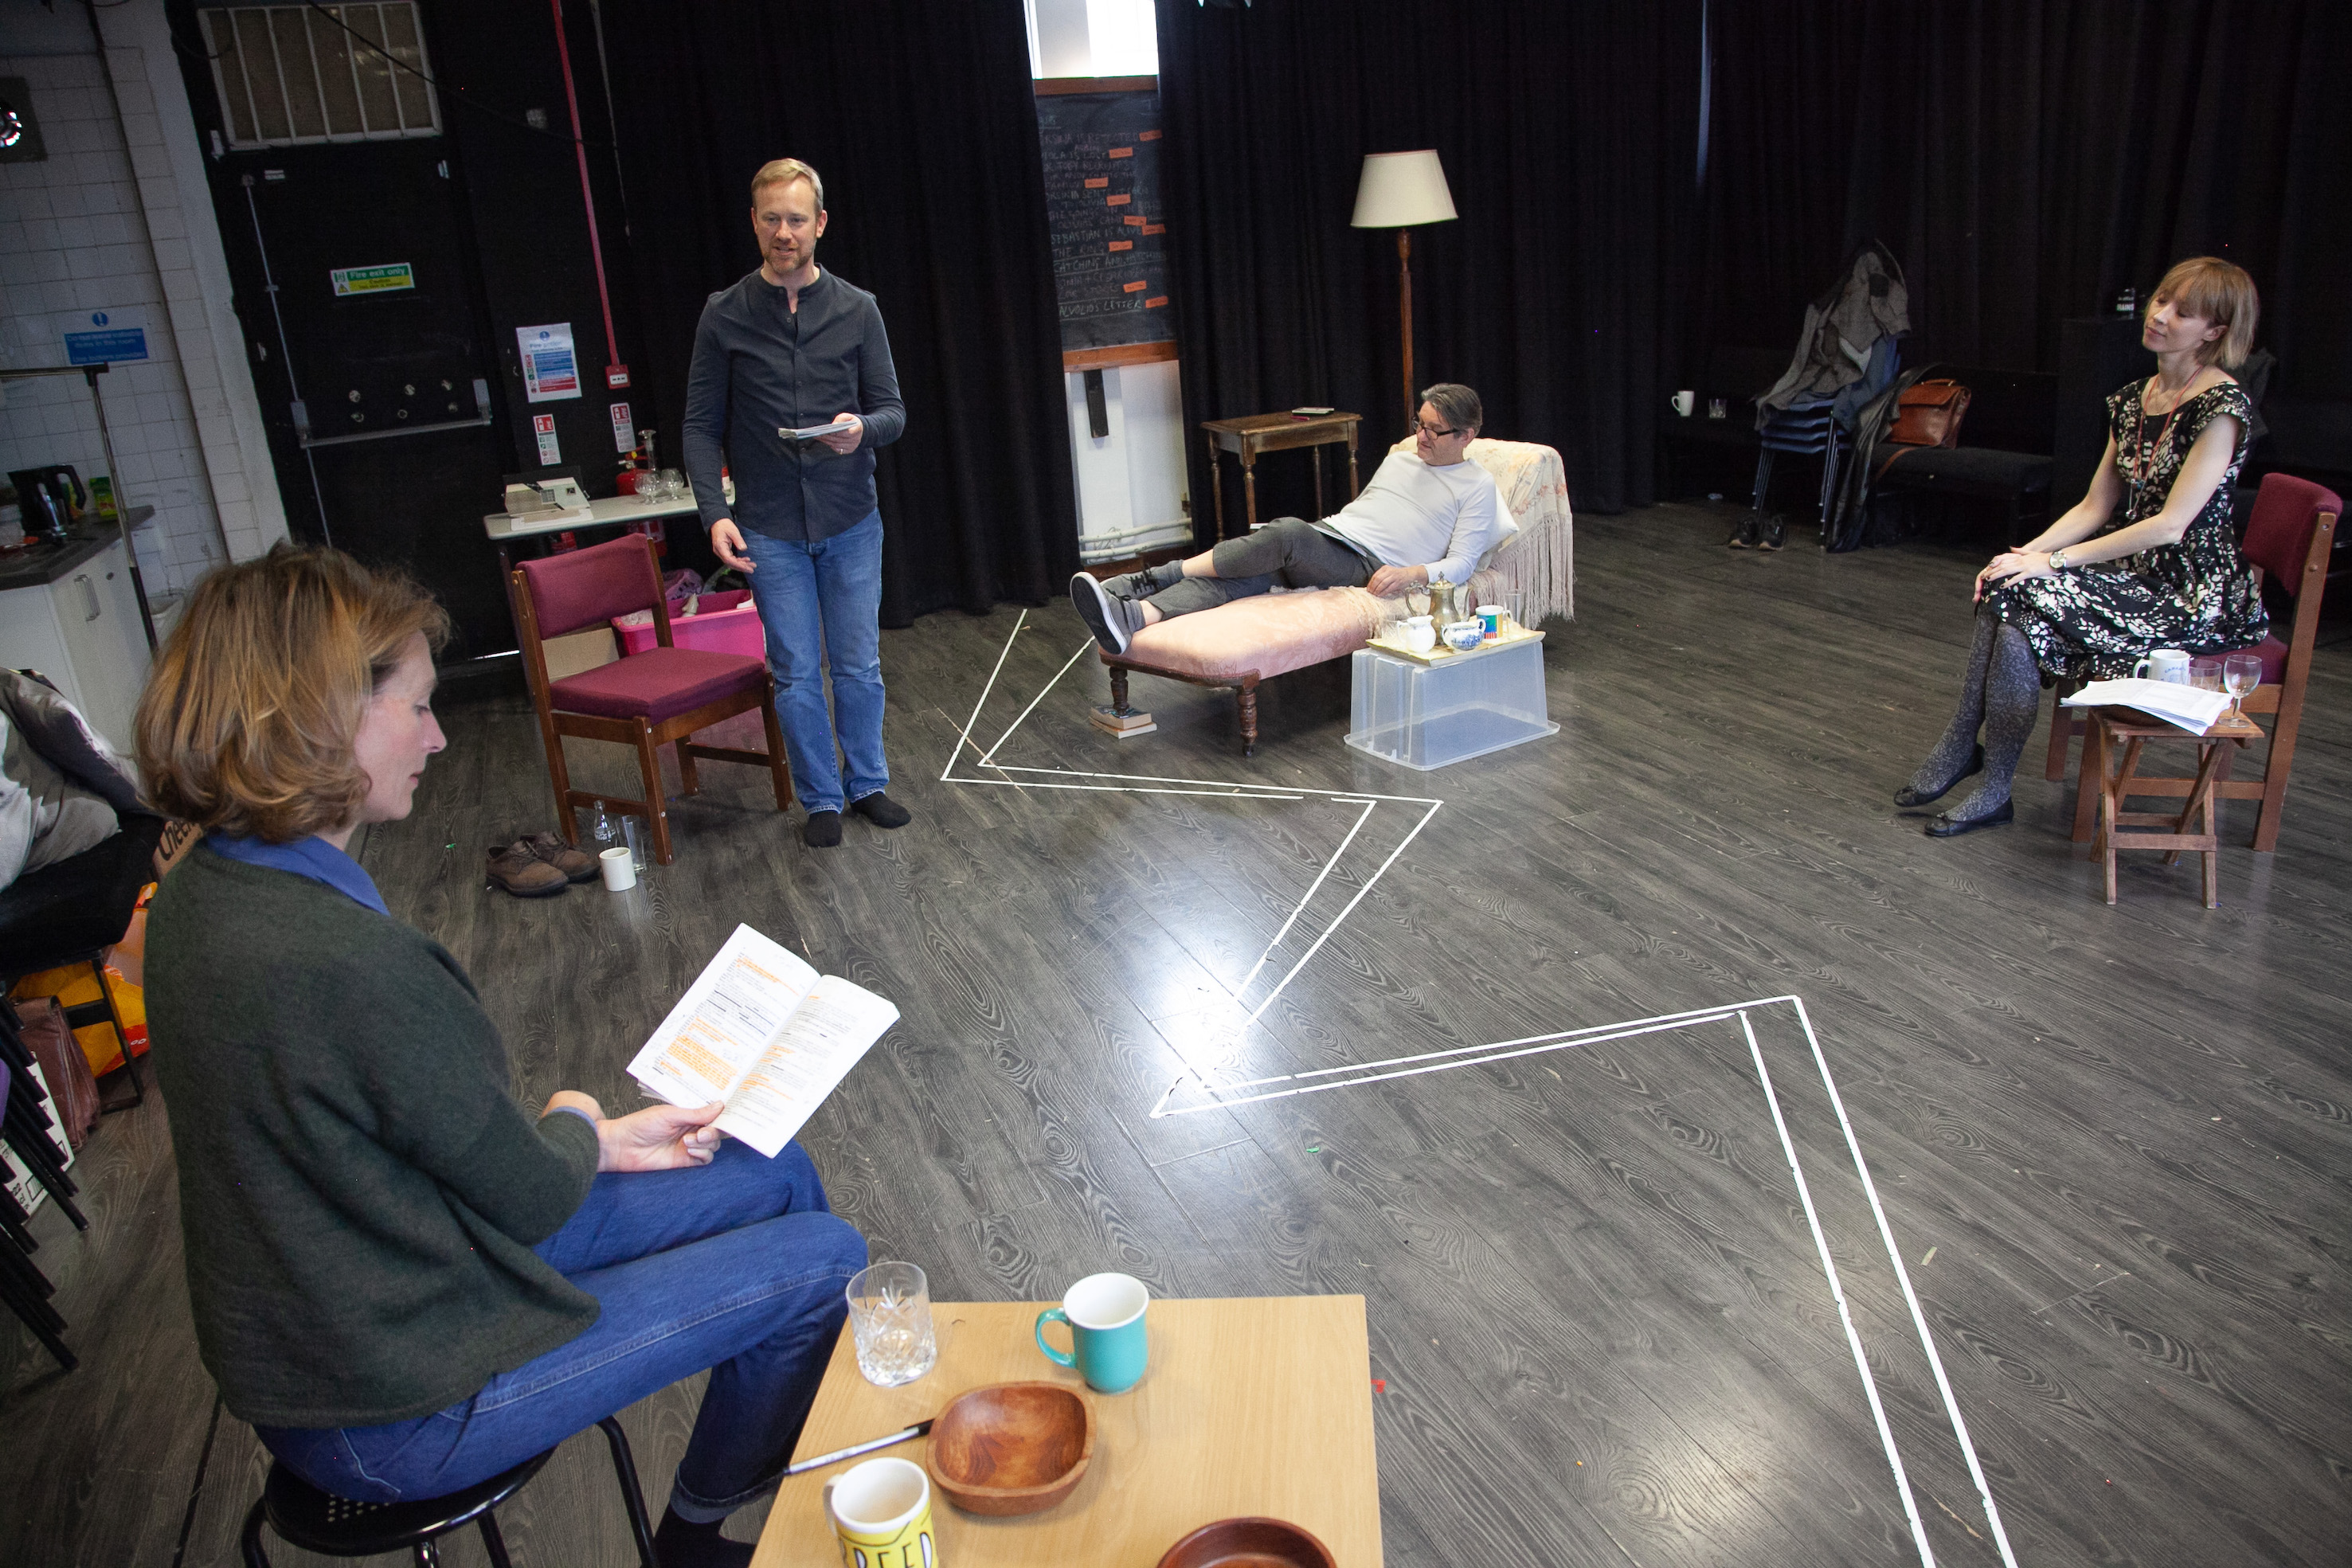 How reviving Bodies makes theatre magic